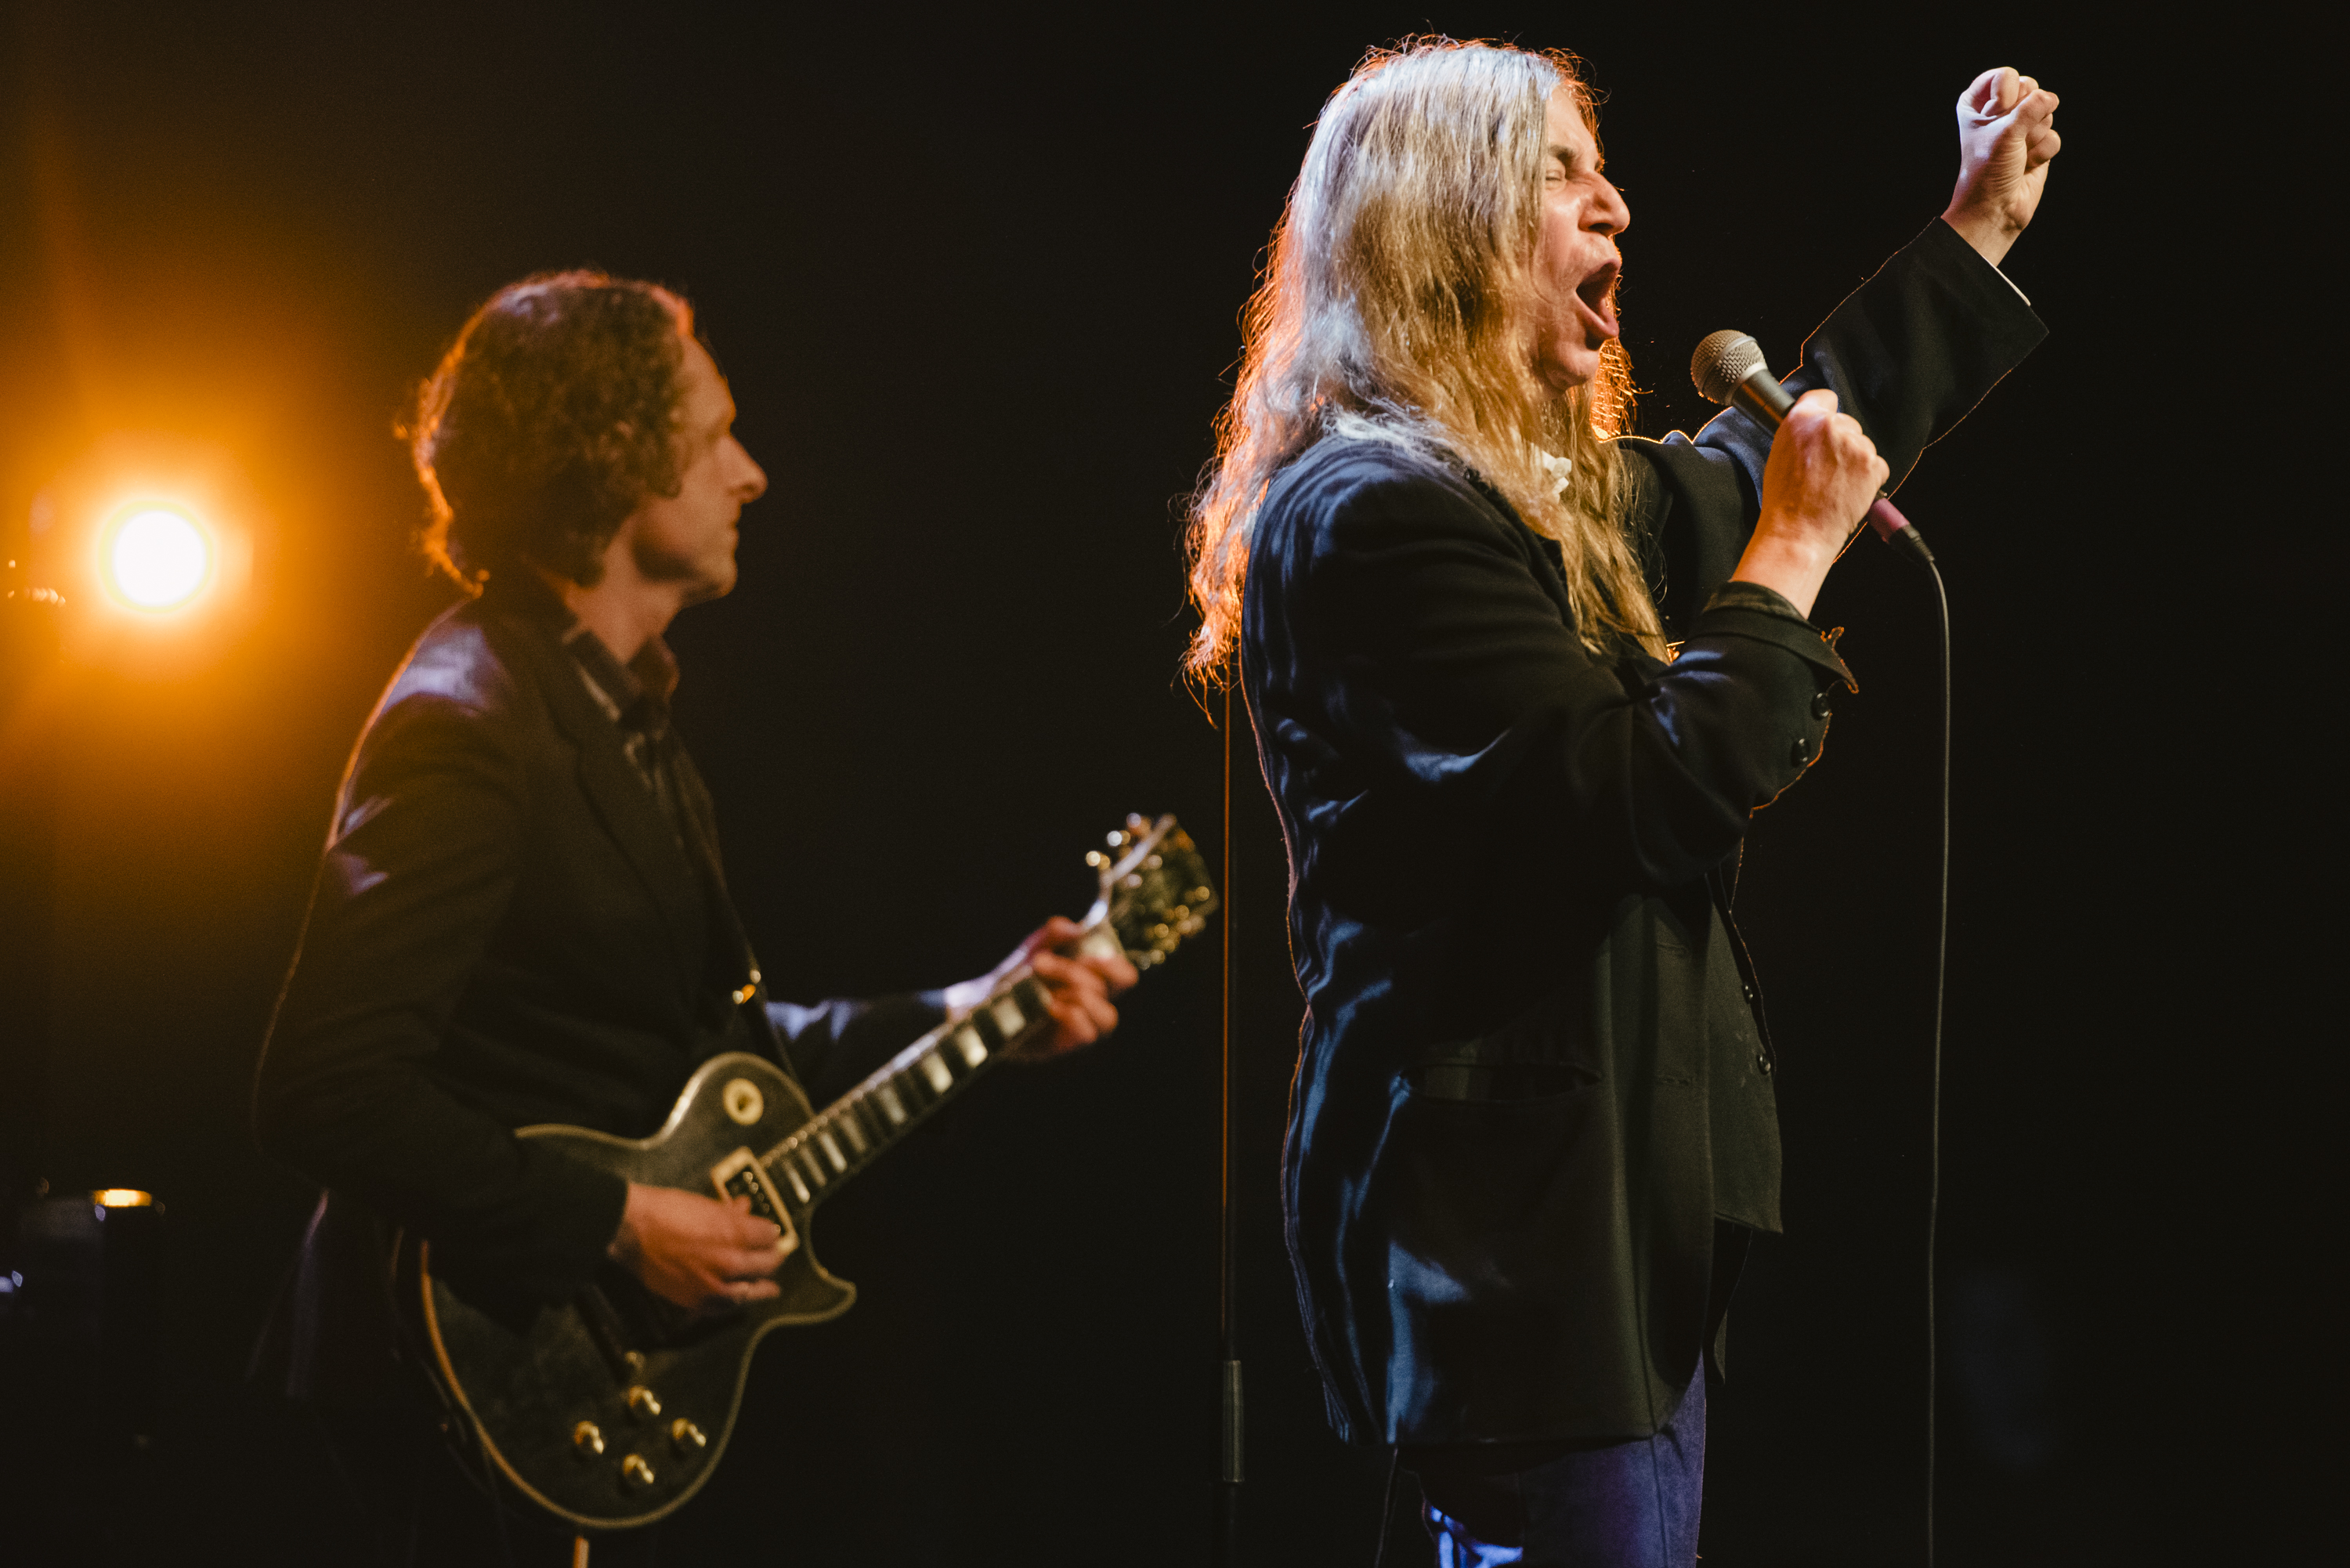 REYKJAVIK, ICELAND - MARCH 18:  Patti Smith performs at the 'Stopp - Let's Protect the Park' nature benefit concert at Harpa